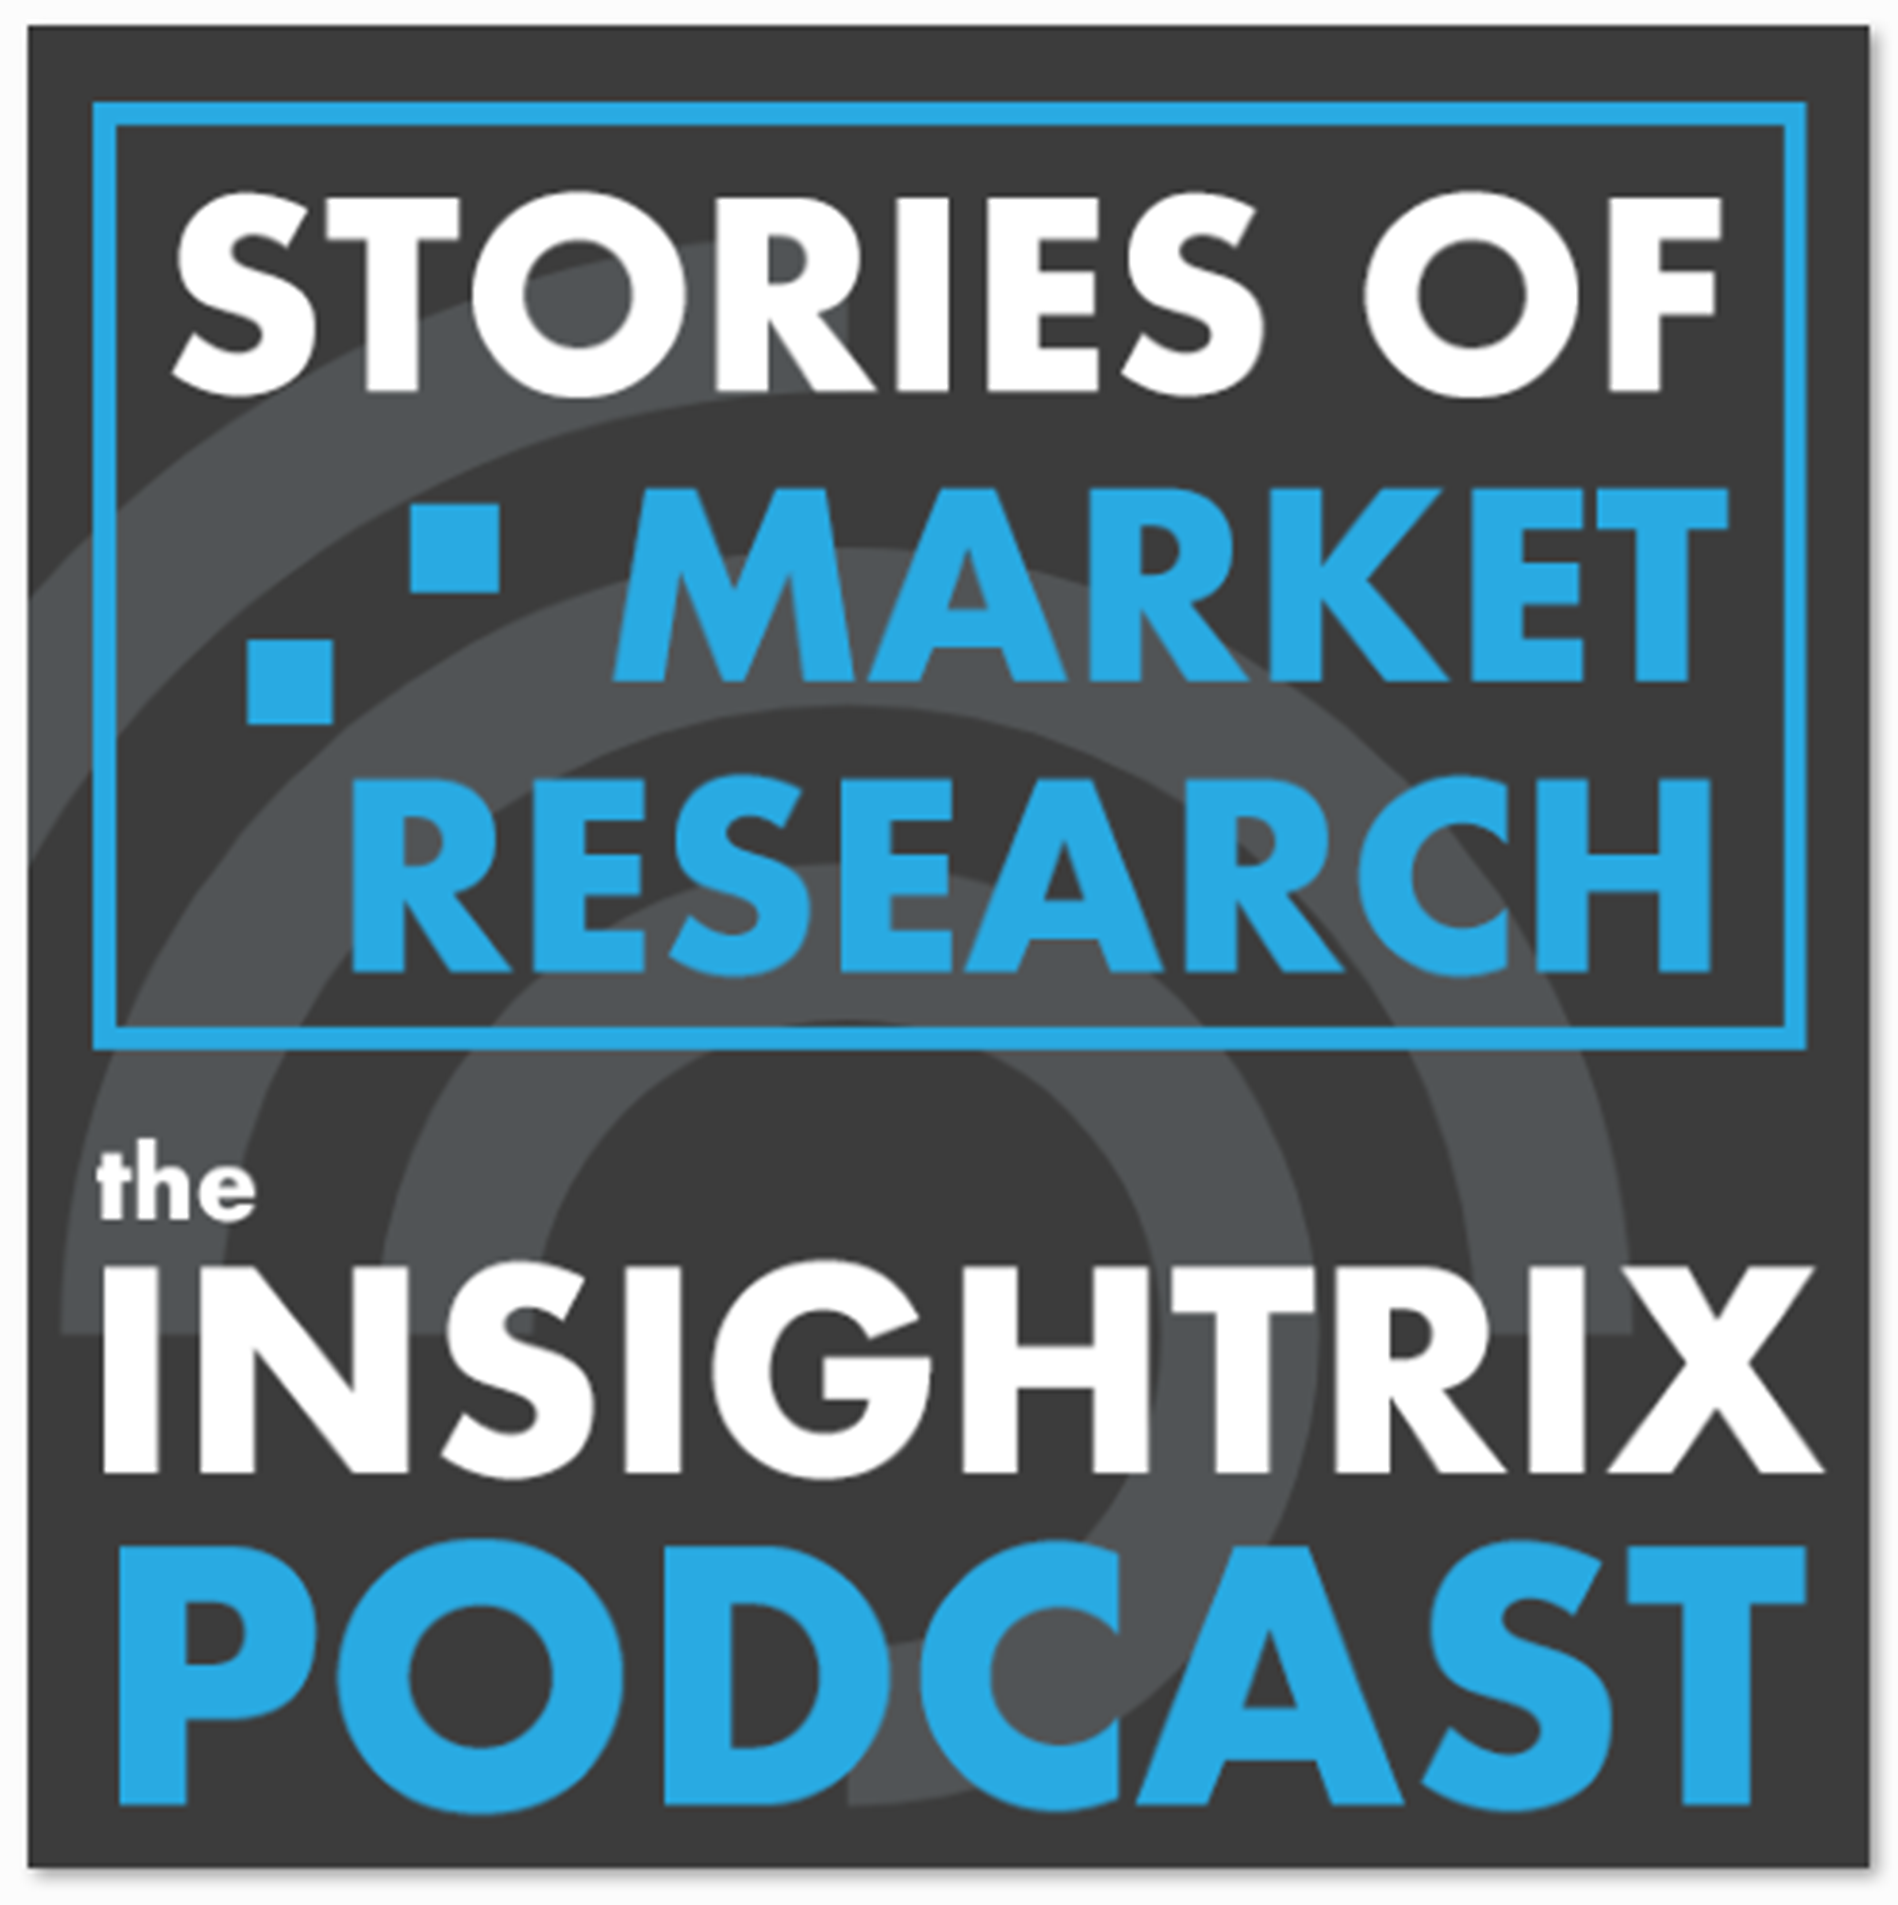 Stories-of-Market-Research, Insightrix-Podcast, Insightrix, Saskatoon-podcast, market-research-podcast, mrx-podcast